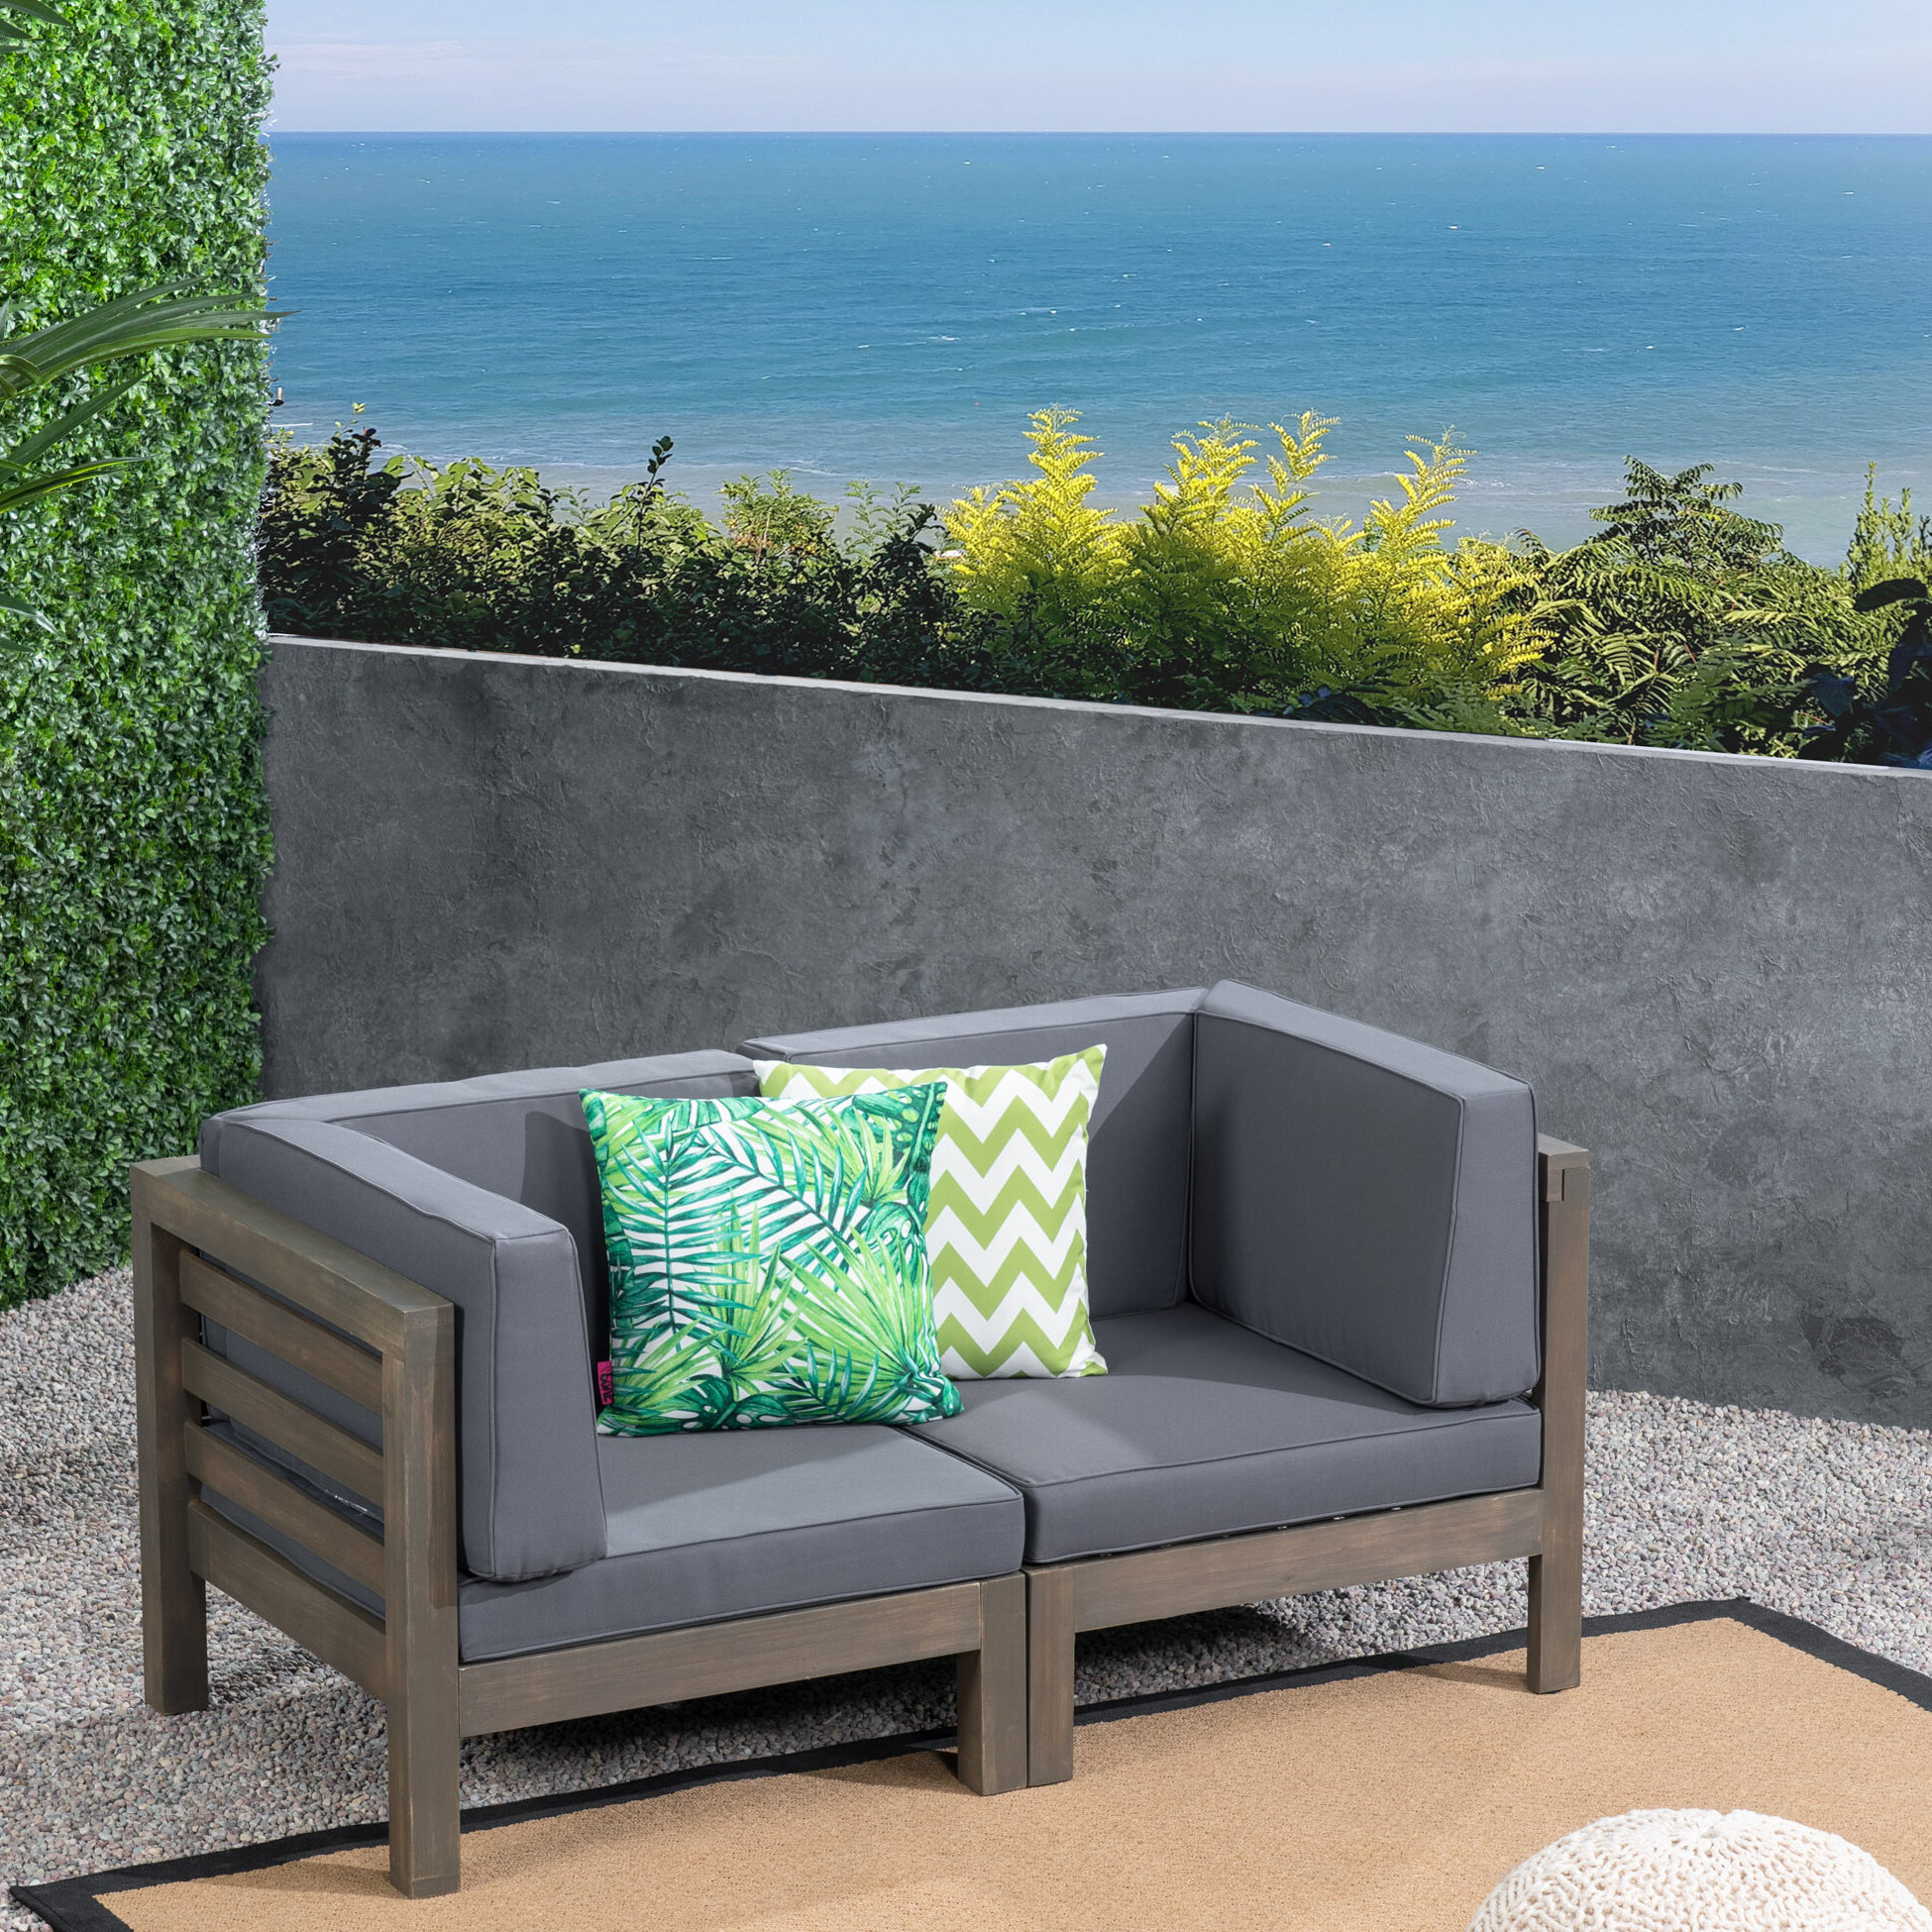 Pantano Loveseats With Cushions Within Fashionable Seaham Loveseat With Cushions (View 7 of 20)